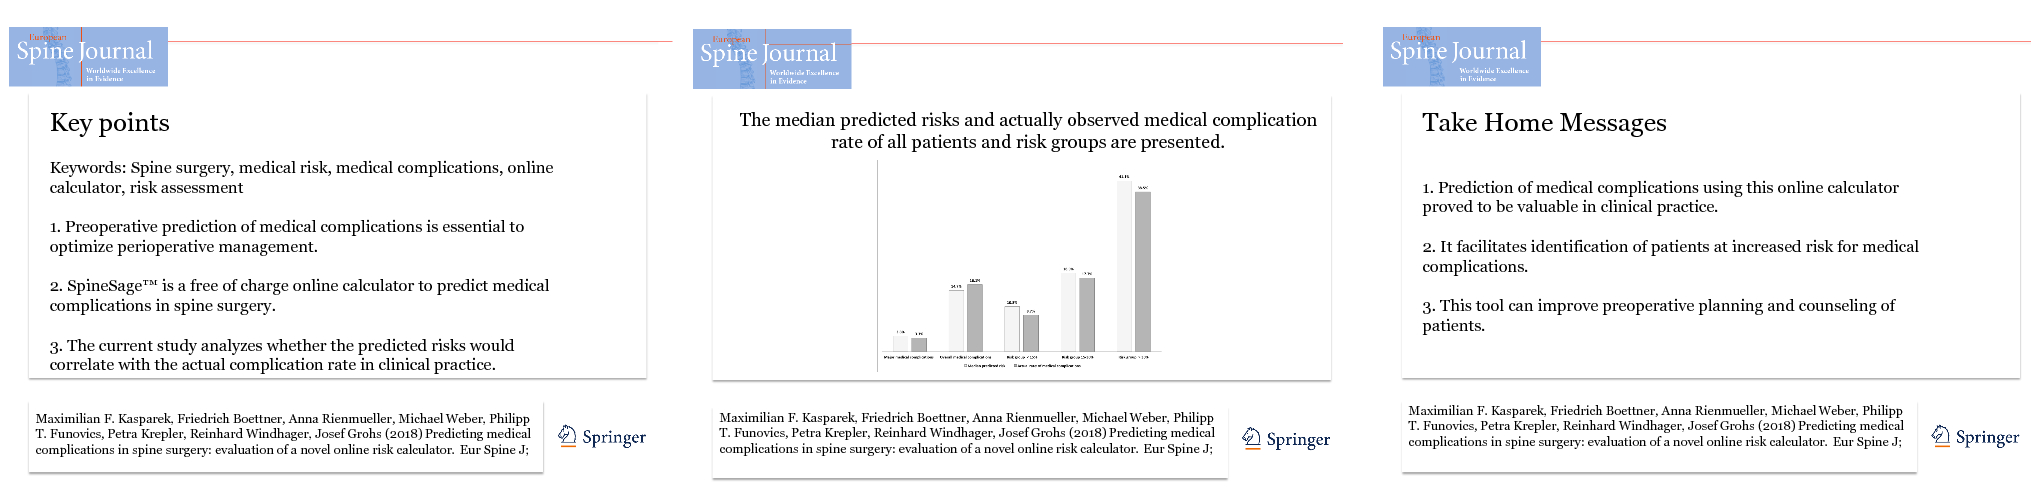 Predicting Medical Complications In Spine Surgery Evaluation Of A